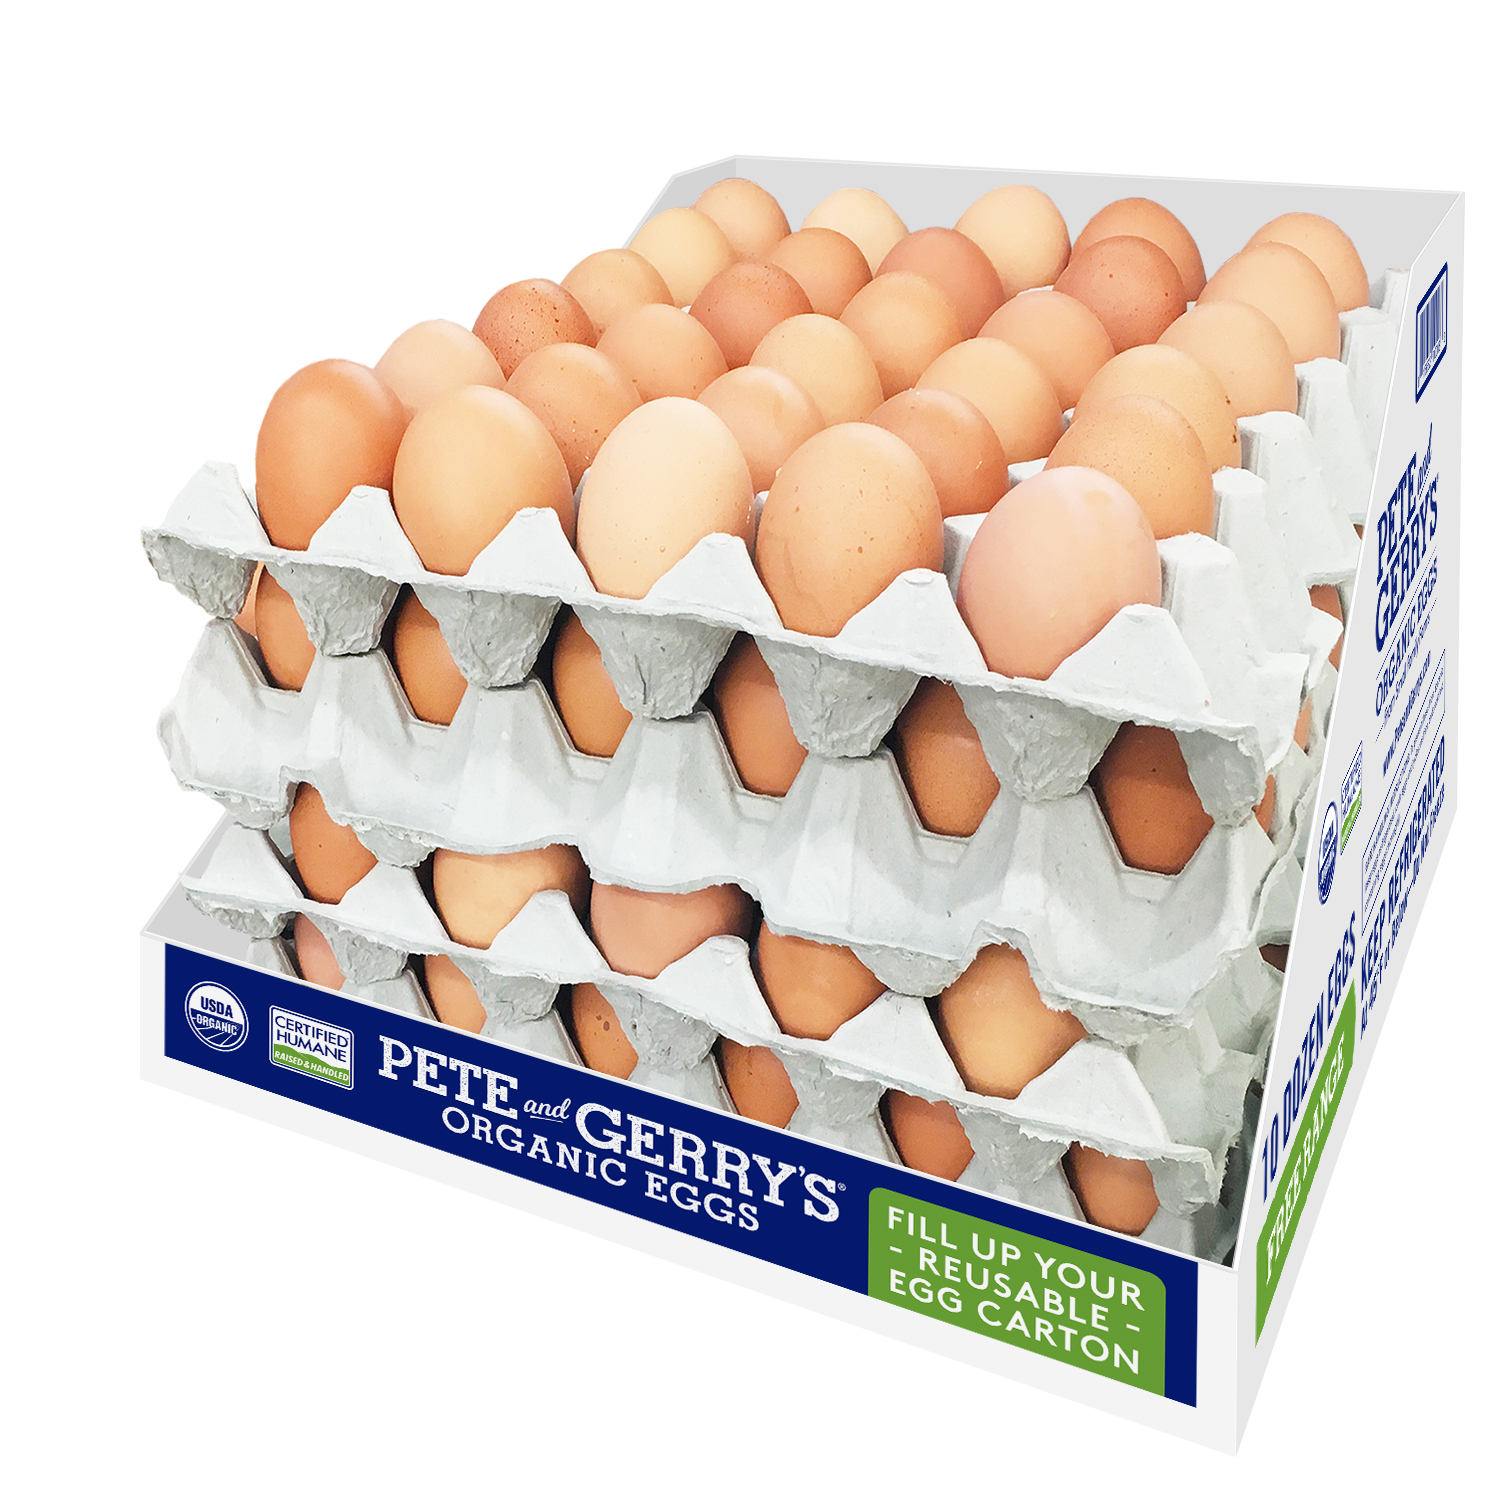 sustainable packaging Pete & Gerry's reusable egg carton program